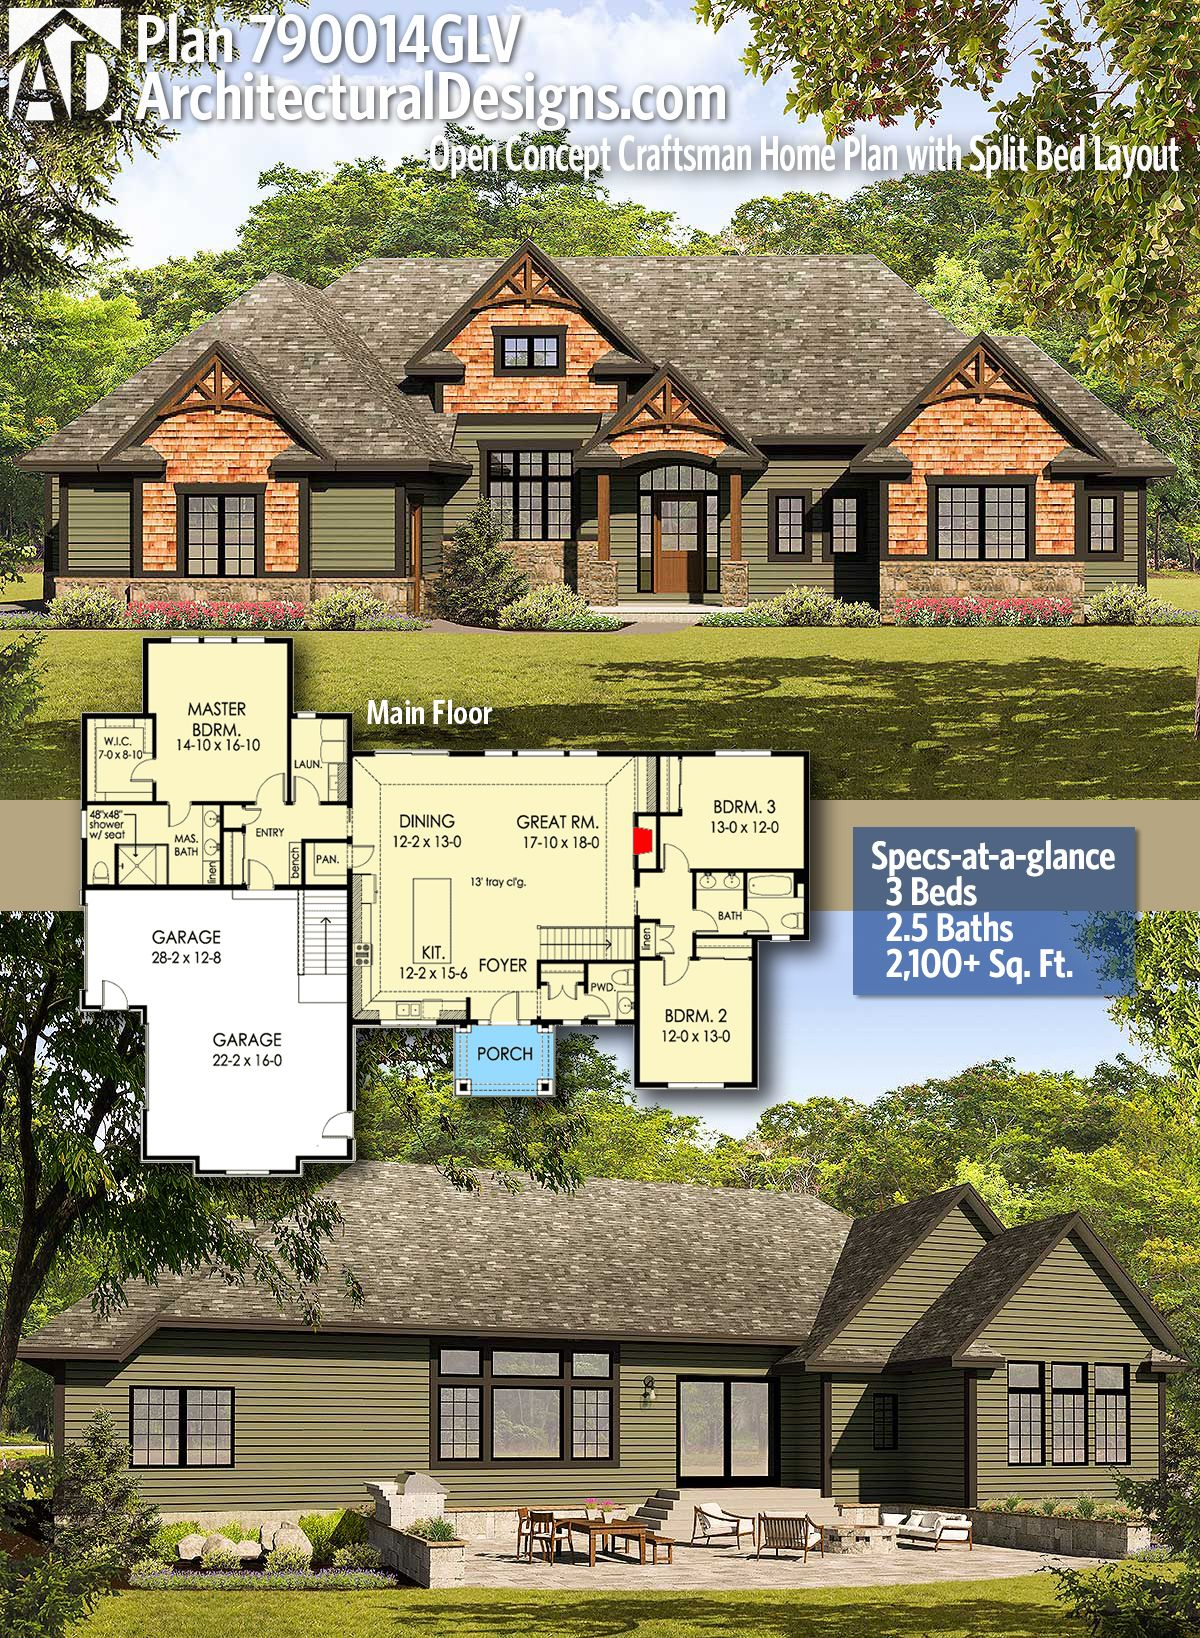 Plan 790014glv Open Concept Craftsman Home Plan With Split Bed Layout Craftsman House Plans Craftsman House New House Plans